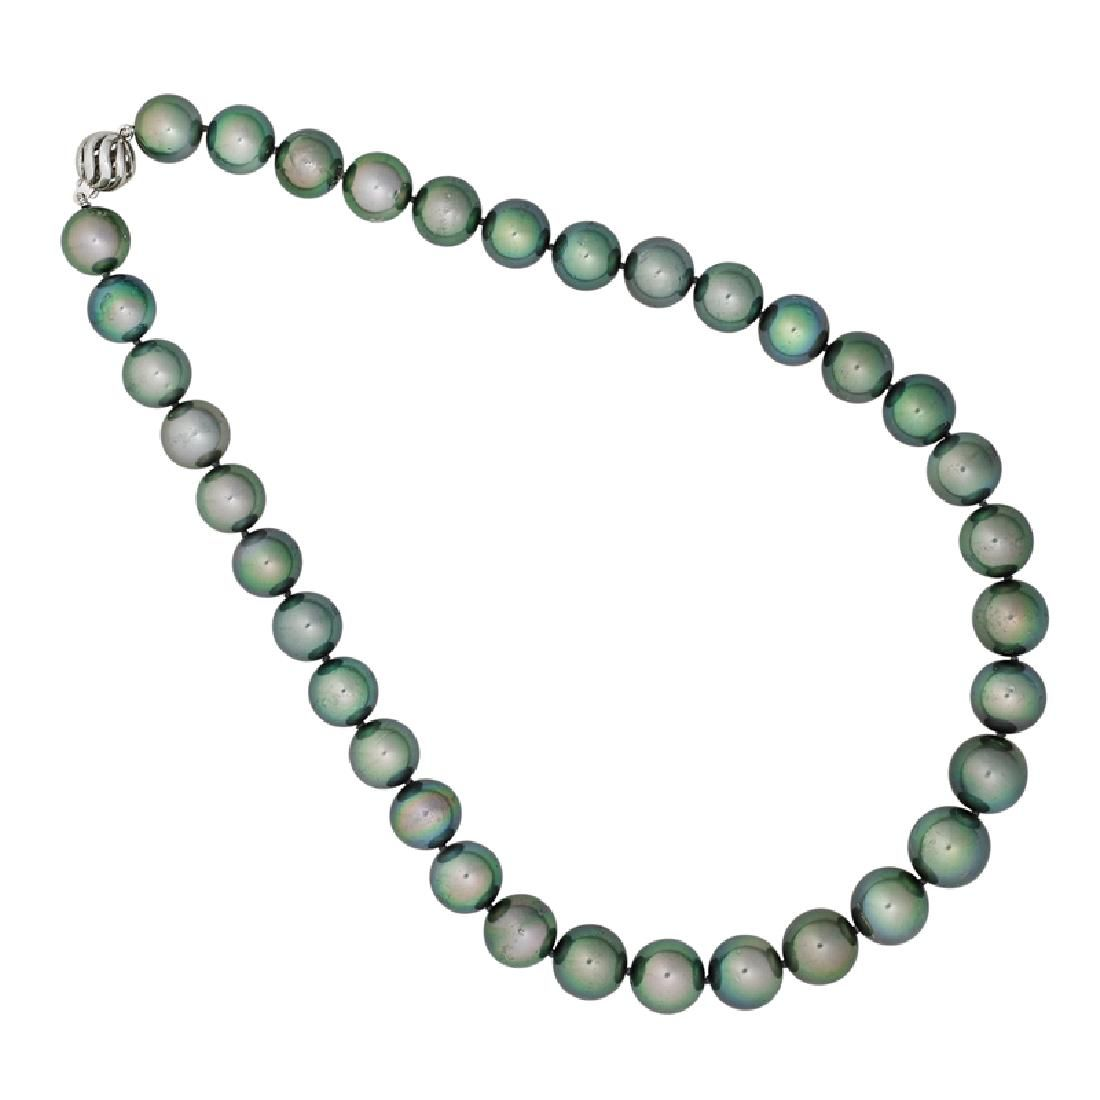 TAHITIAN BLACK SOUTH SEA PEARL NECKLACE